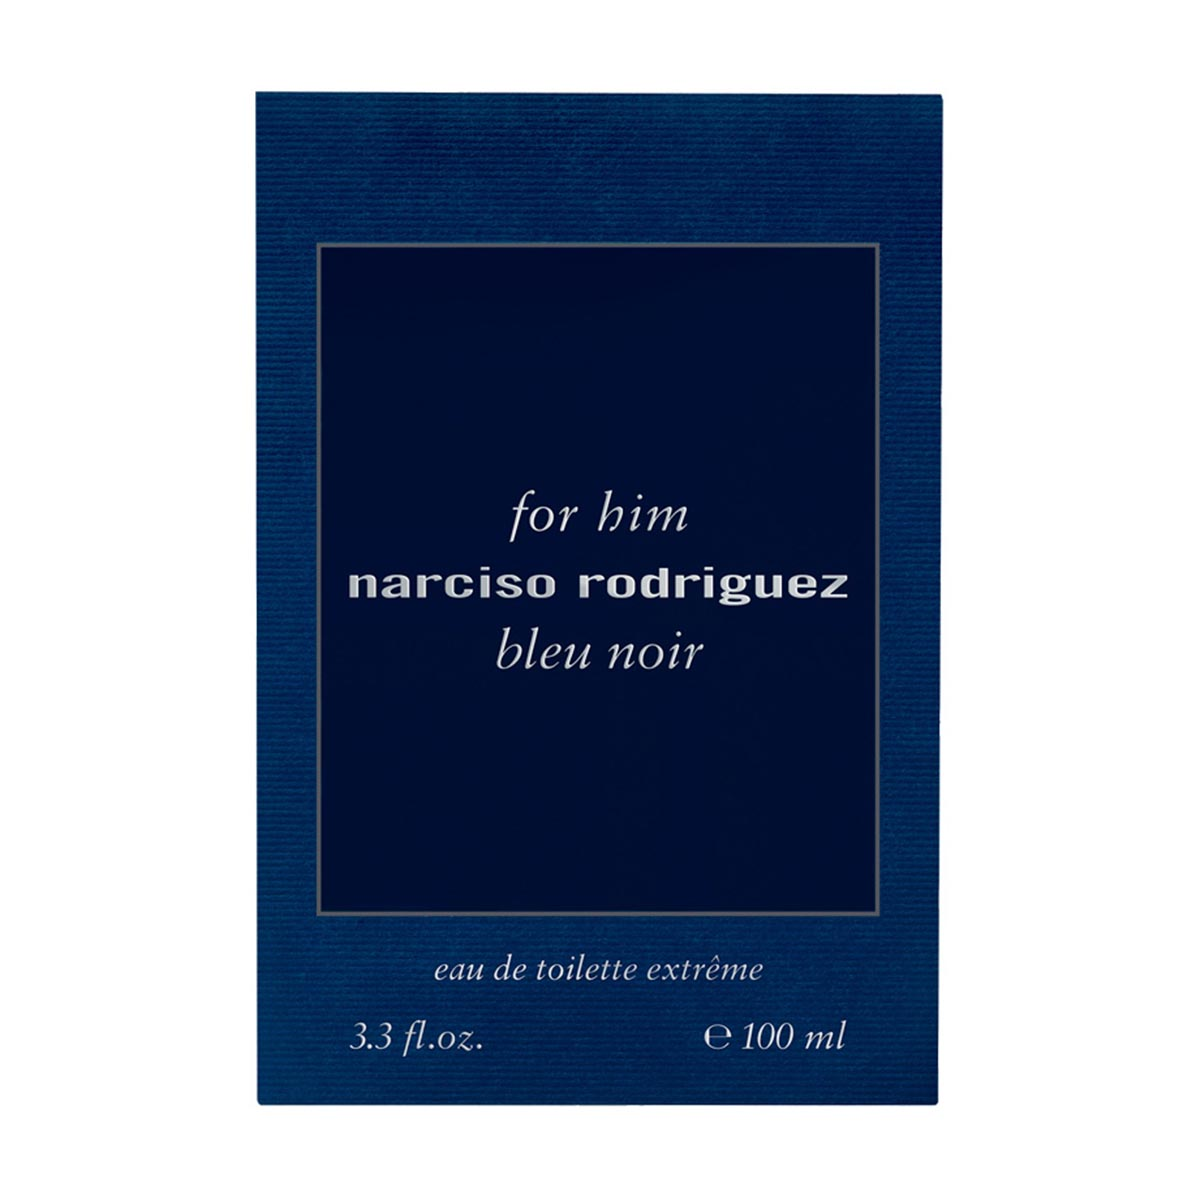 Narciso rodriguez for him bleu noir eau de toilette extreme 100ml vaporizador